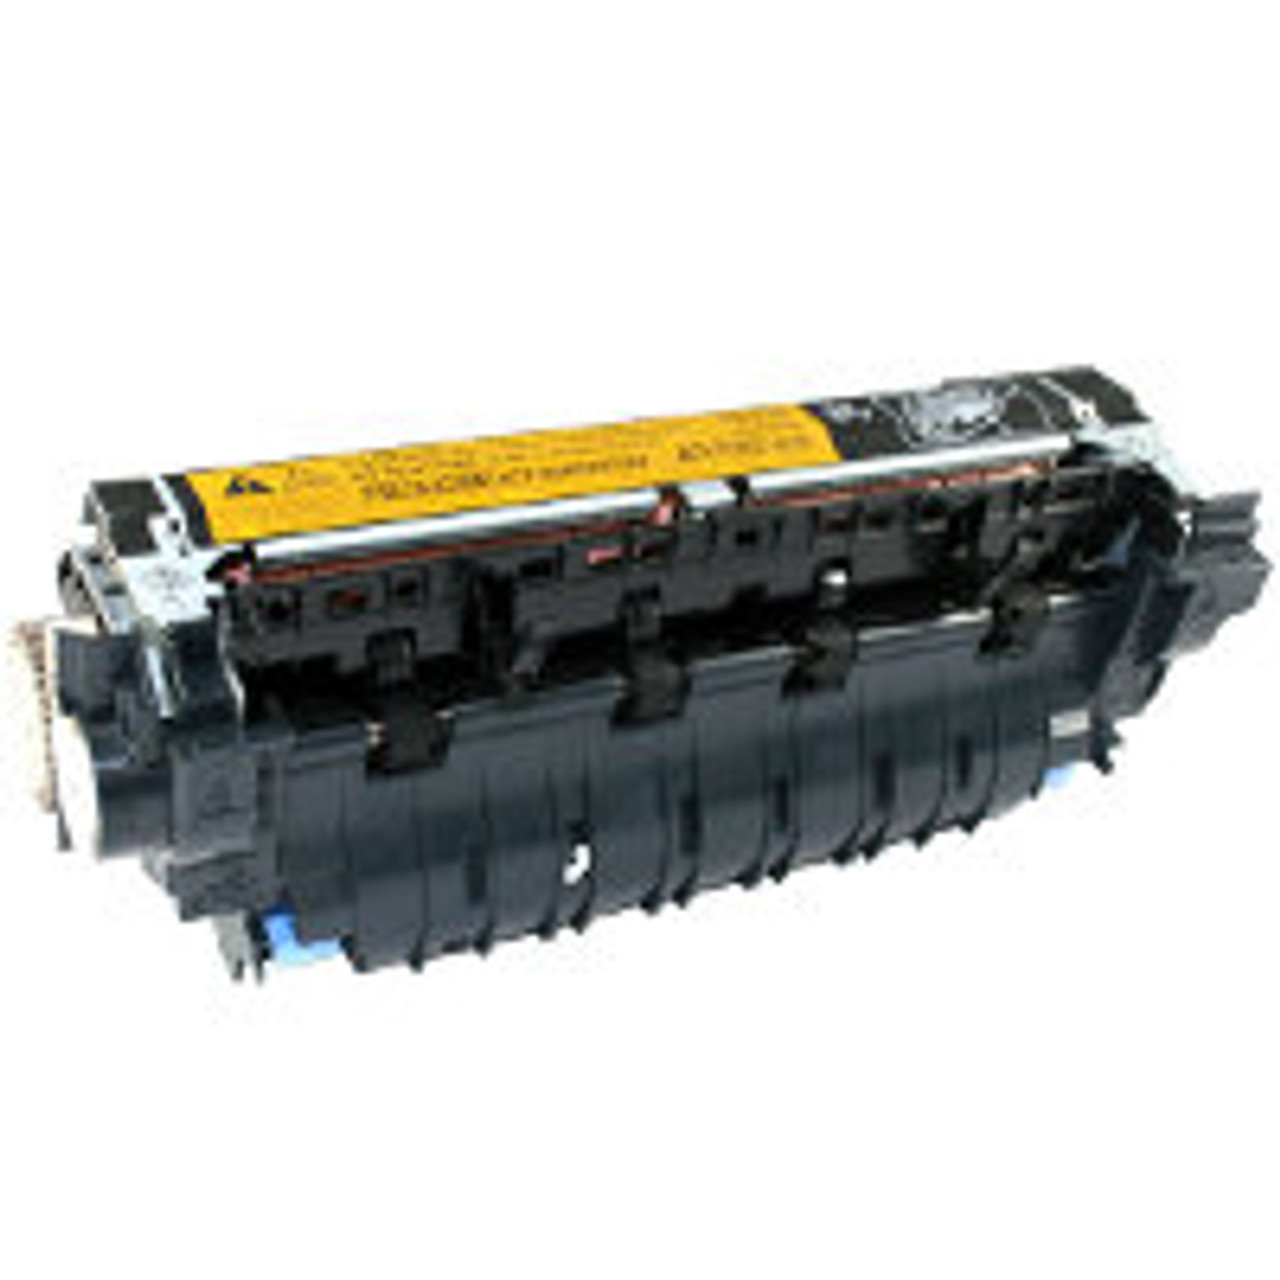 HP P4015 P4515 P4014 Fuser Kit/ RM1-4554 Refurbished